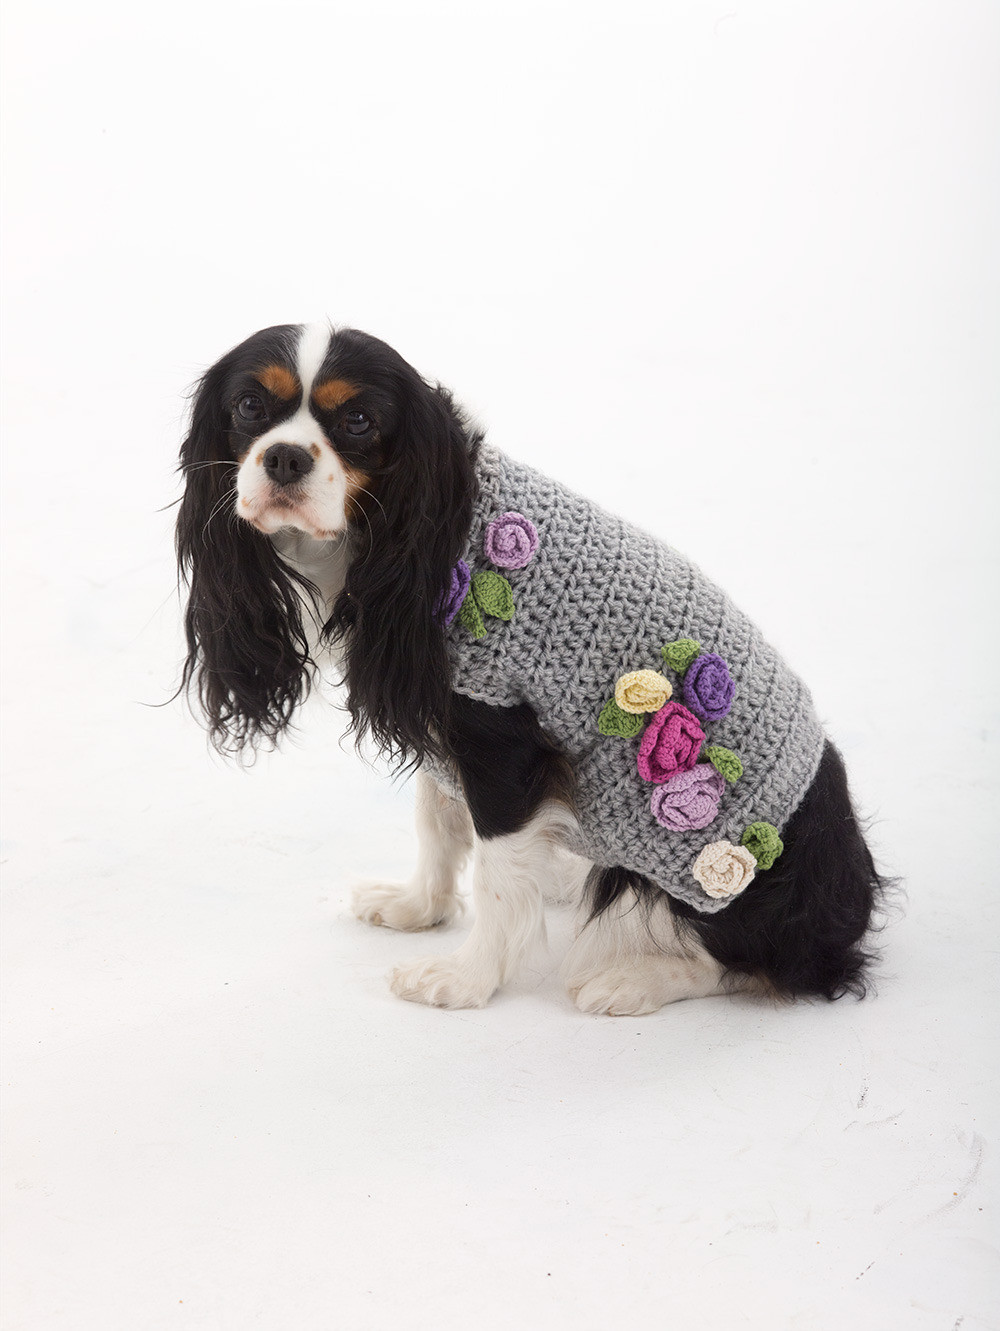 Dog Sweater Patterns Best Of Lady who Lunches Dog Sweater In Lion Brand Vanna S Choice Of Unique 41 Photos Dog Sweater Patterns